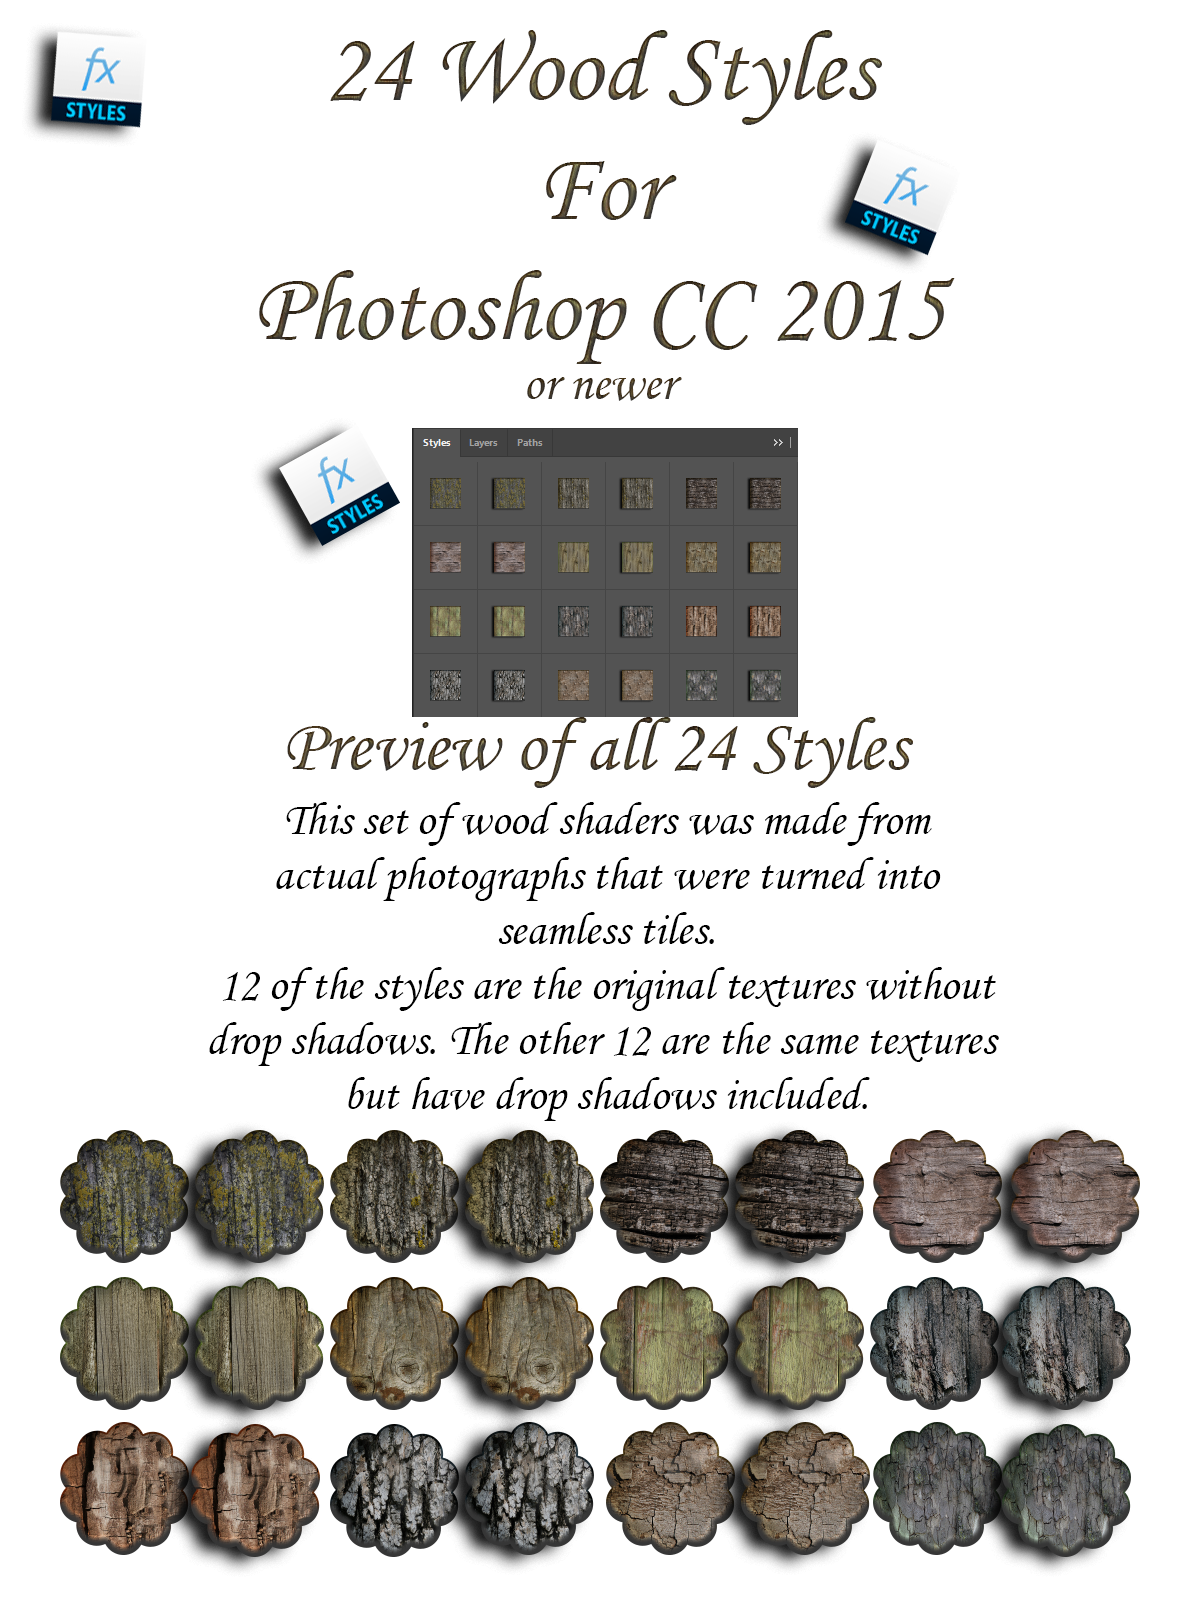 FB Wood Styles For Photoshop